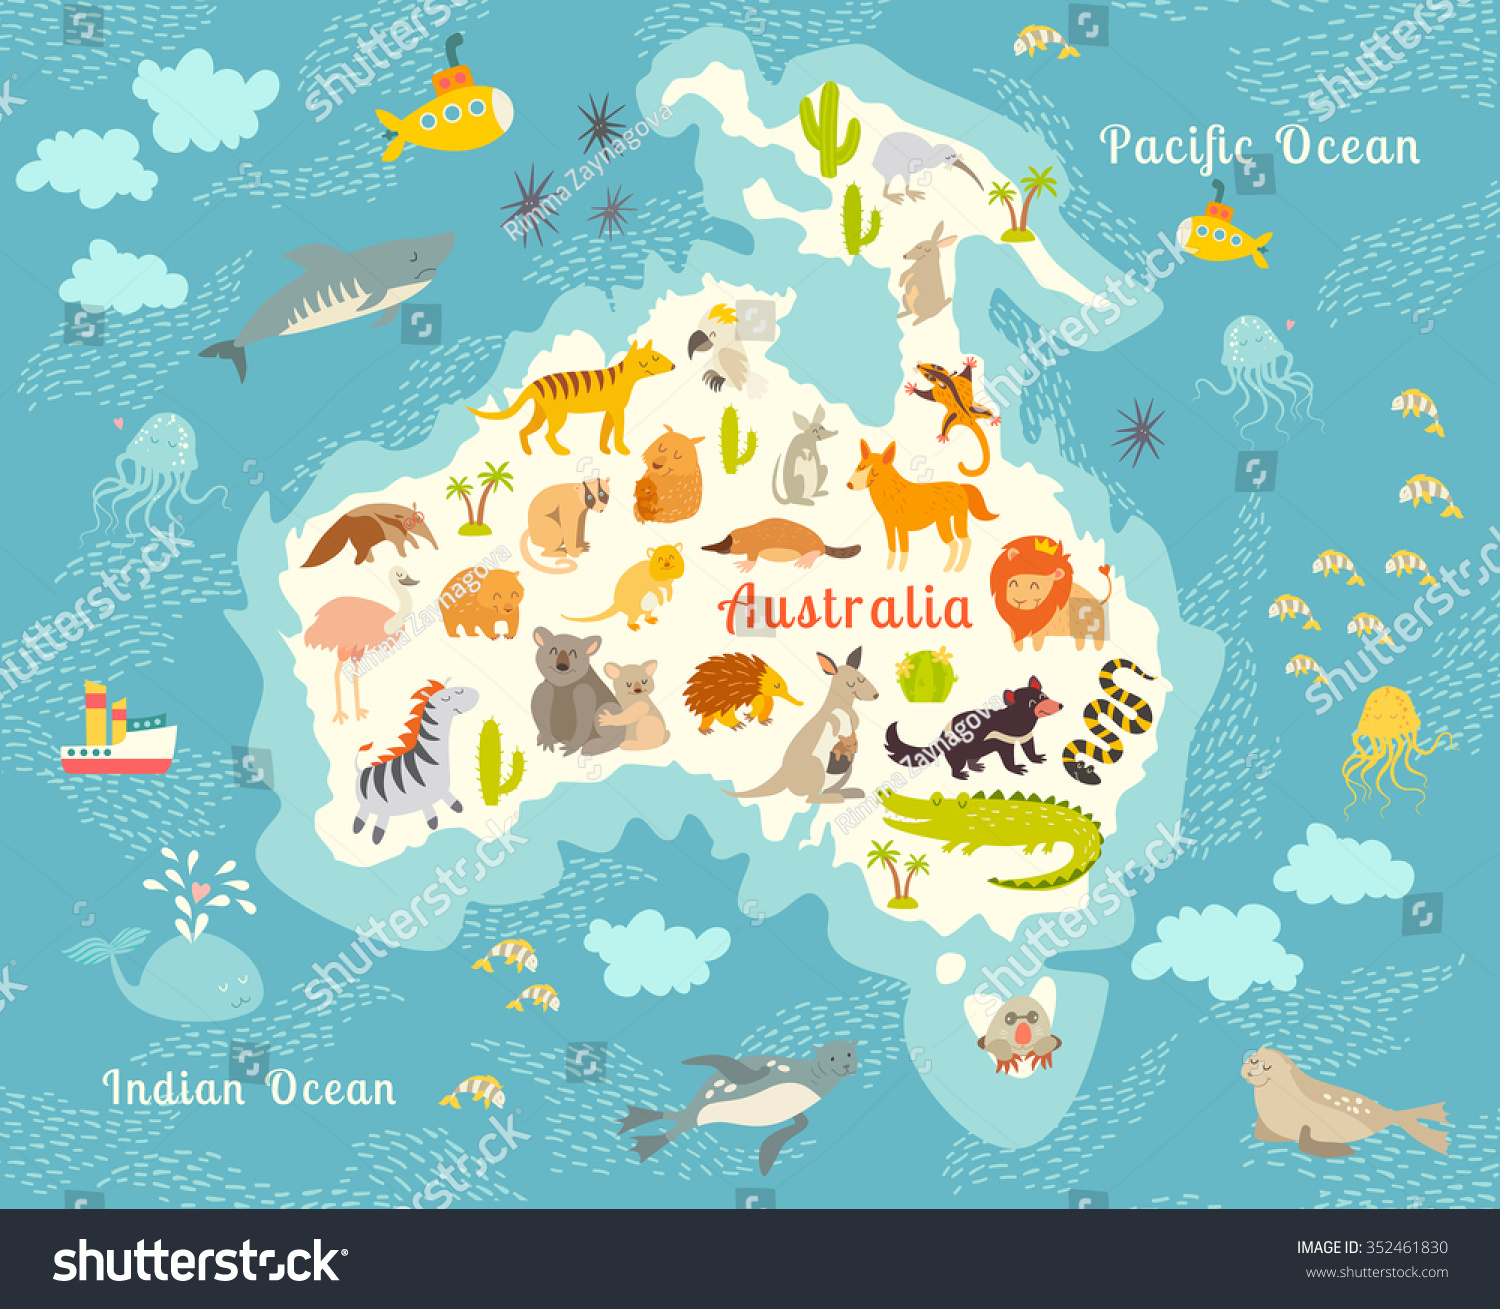 animals world map australia australian animals poster australia map australia mammals cartoon